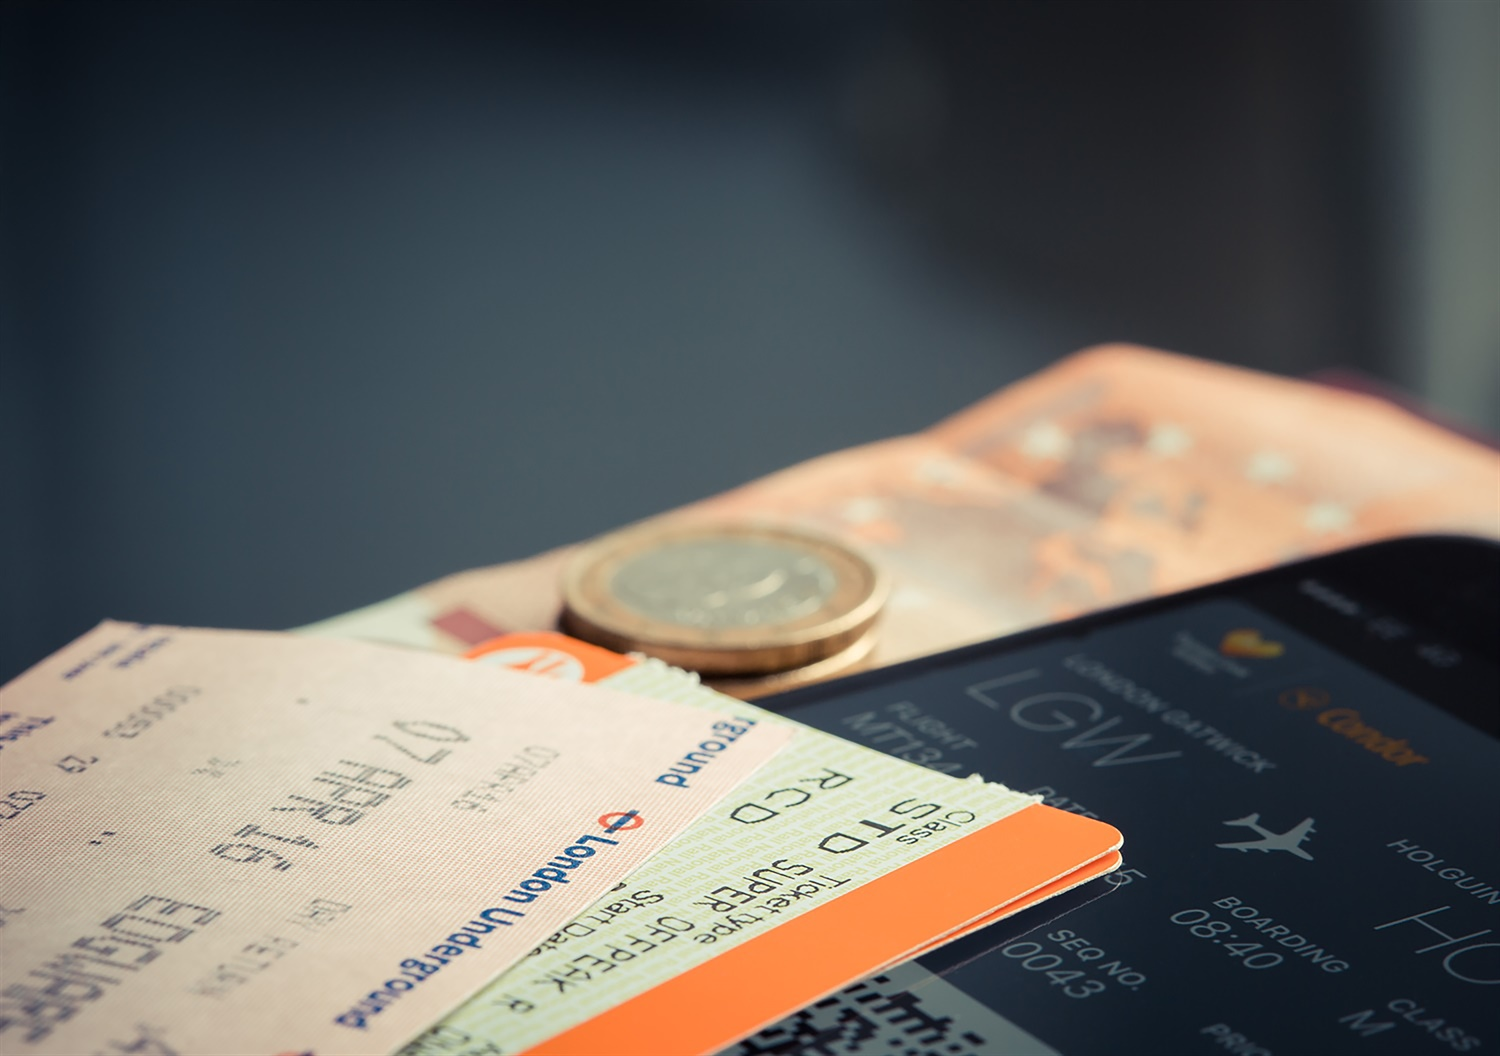 rail fares tickets c. Torsten Dettlaff edit